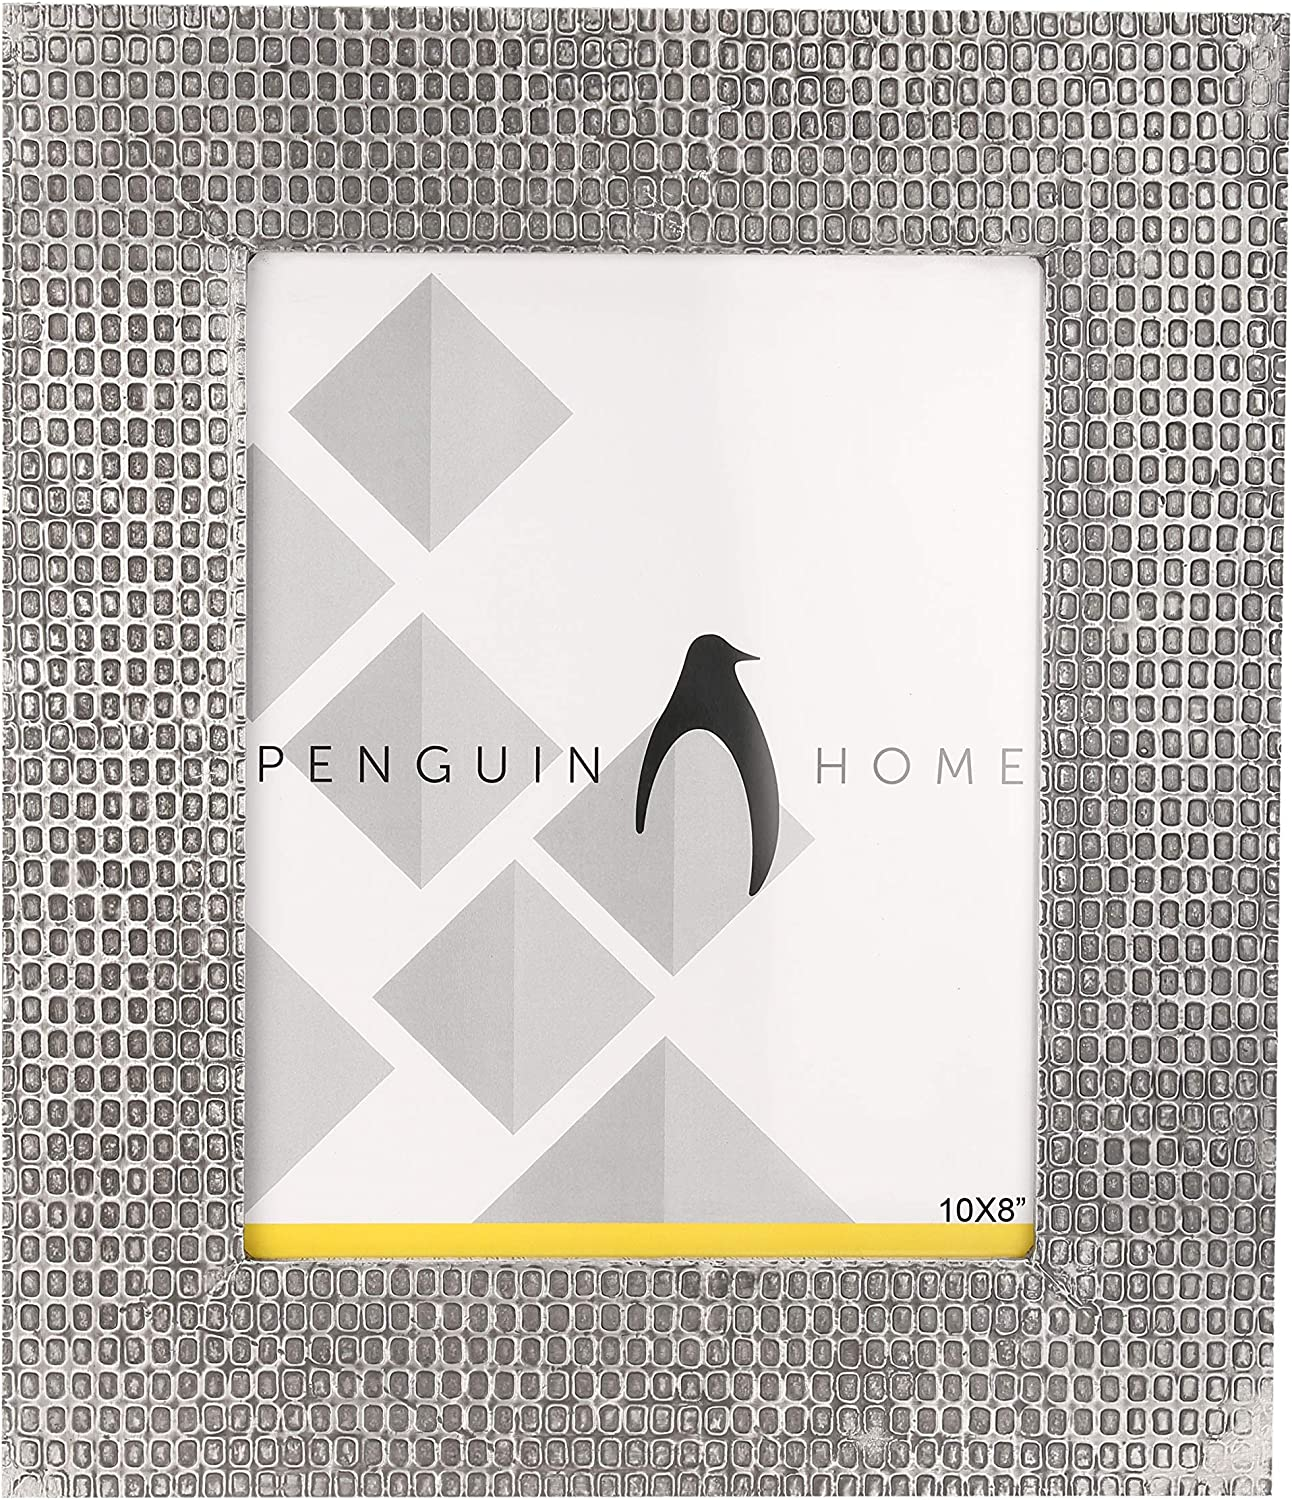 Vintage Freestanding 15 X 10 cm Perfect Gift for Family /& Friends Real Glass Window Penguin Home Handcrafted Photo Frame 6 X 4 Metal Finish Beautiful Design Portrait or Landscape